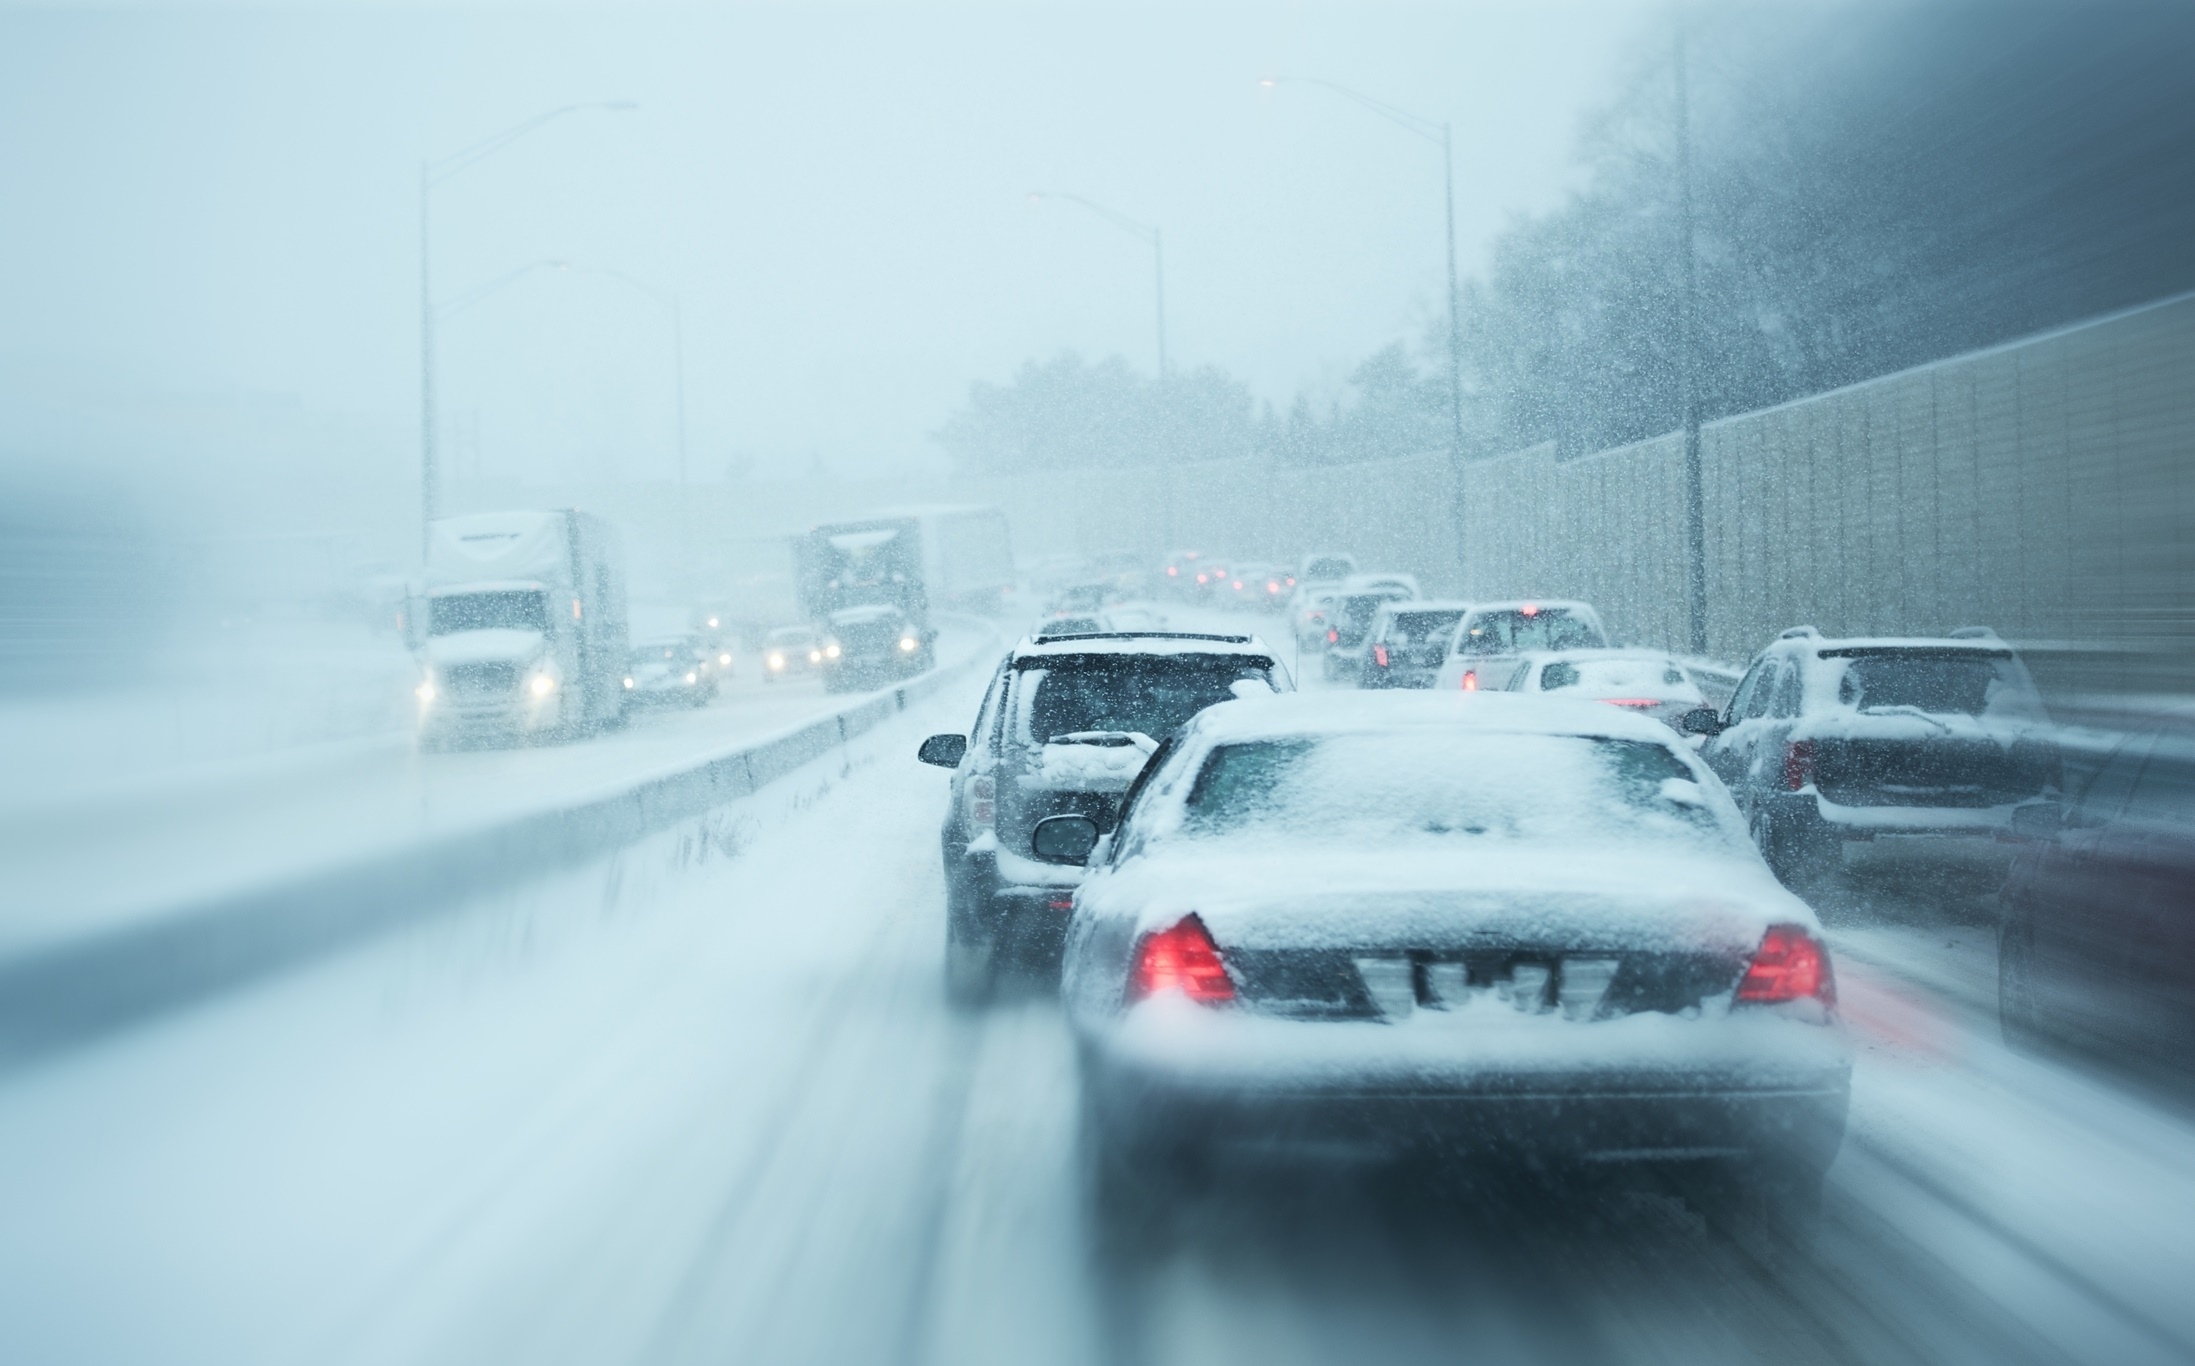 http://www.dreamstime.com/royalty-free-stock-photo-winter-storm-traffic-image25957815